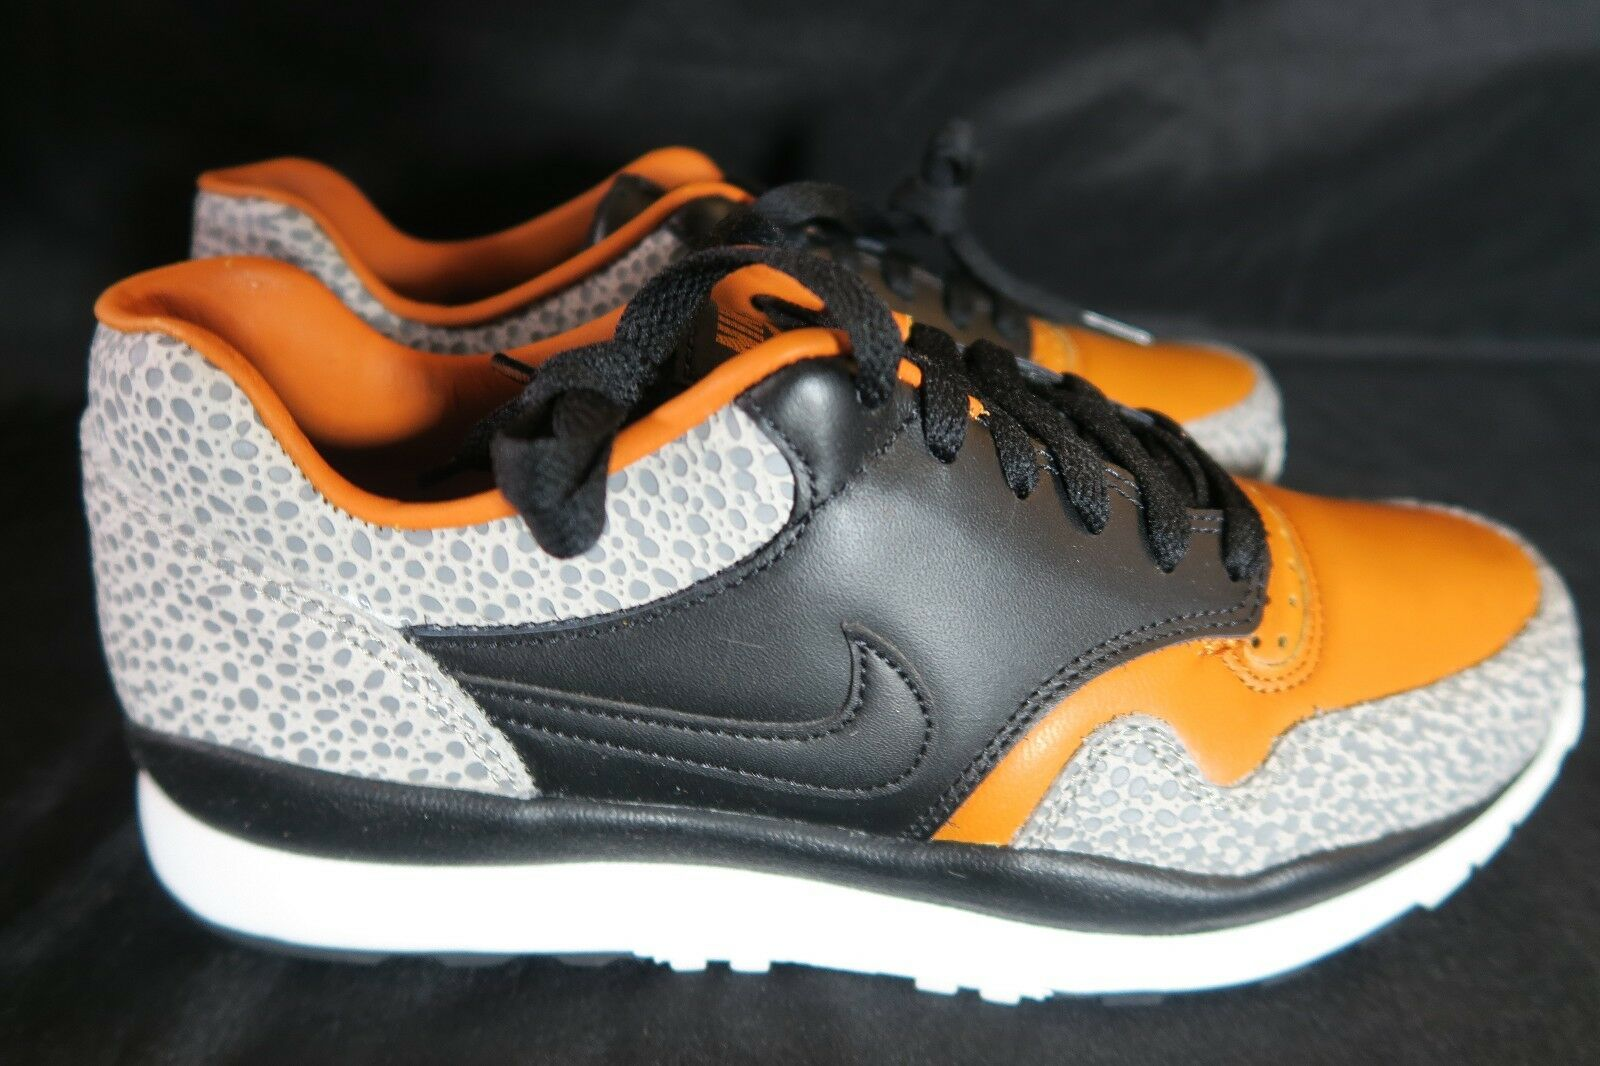 Nike Air Safari 2018 Retro QS '18 US 9.5 Style AO3295-001